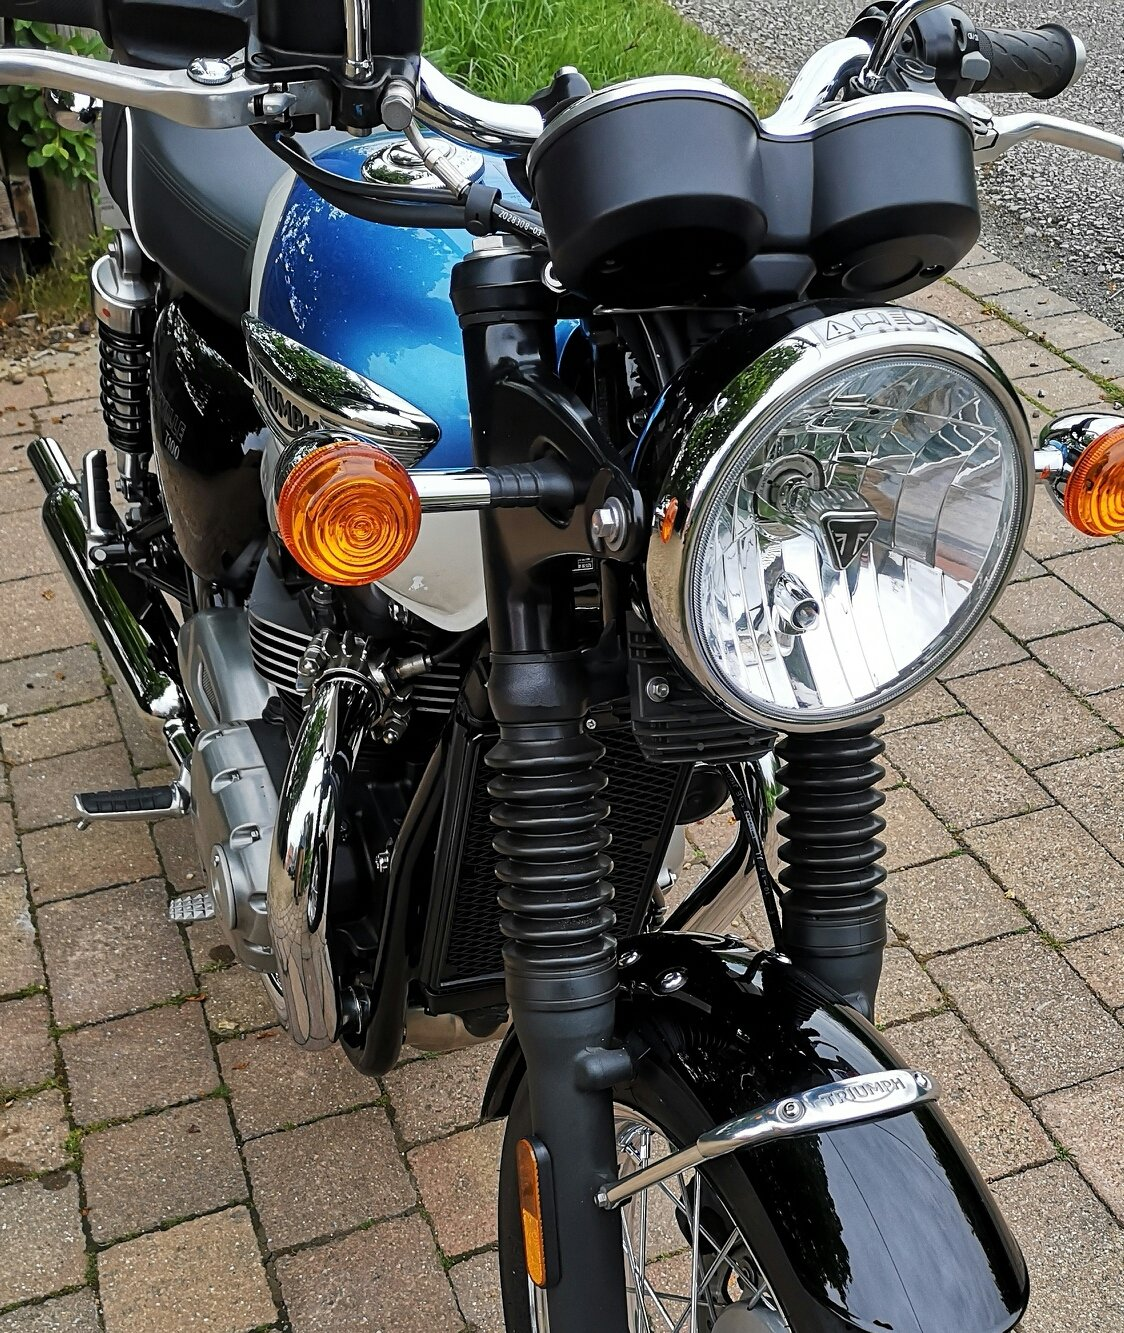 2018 Triumph Bonnevill T100 in stunning metallic blue For Sale (picture 5 of 6)